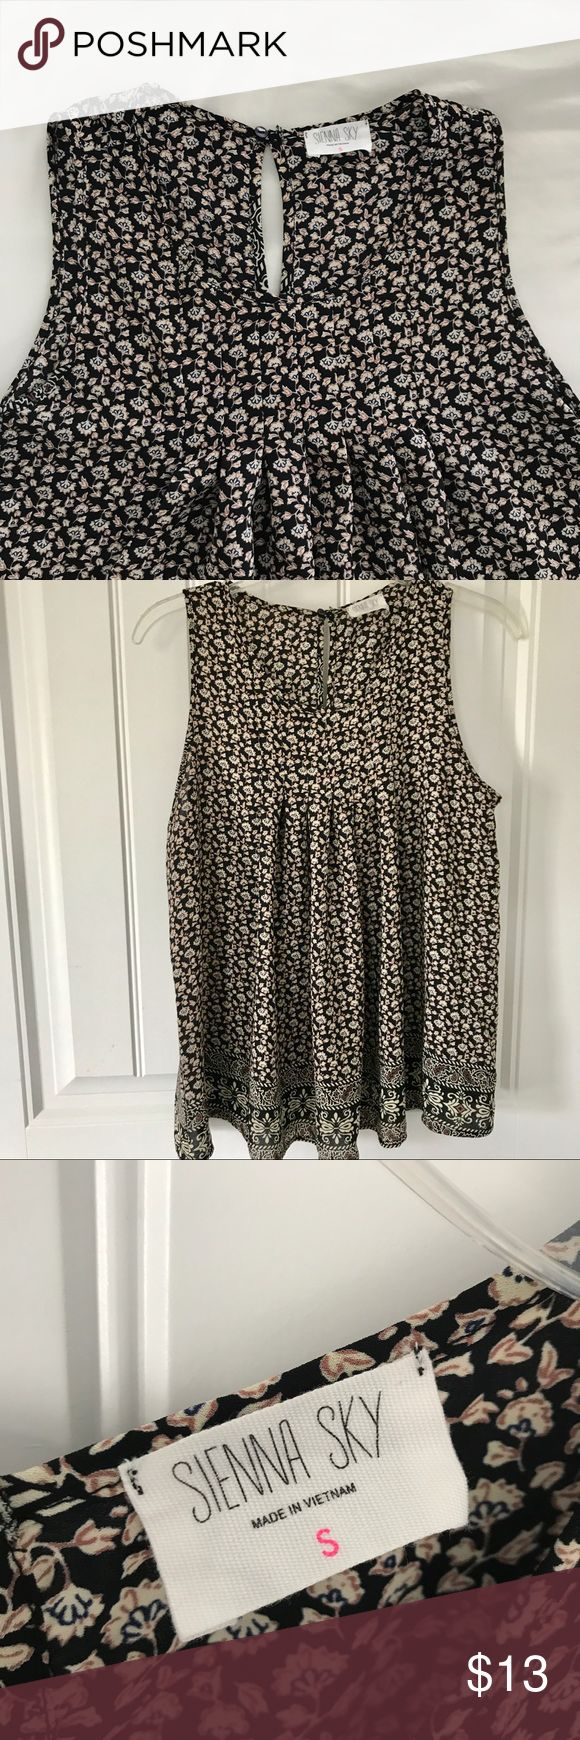 Sienna Sky sleeveless blouse NWOT Sienna Sky sleeveless blouse • condition: like new/excellent, never worn • color: black with floral pattern, cream, burgundy, dark blue. last photo shows sheerness when held up to sunlight • size: s, fits true to size • brand: Sienna Sky, purchased at boutique in Cape May, NJ.📍 bundle 2 for a private offer, or make your own!  accepting all reasonable offers!🤝 Sienna Sky Tops Blouses